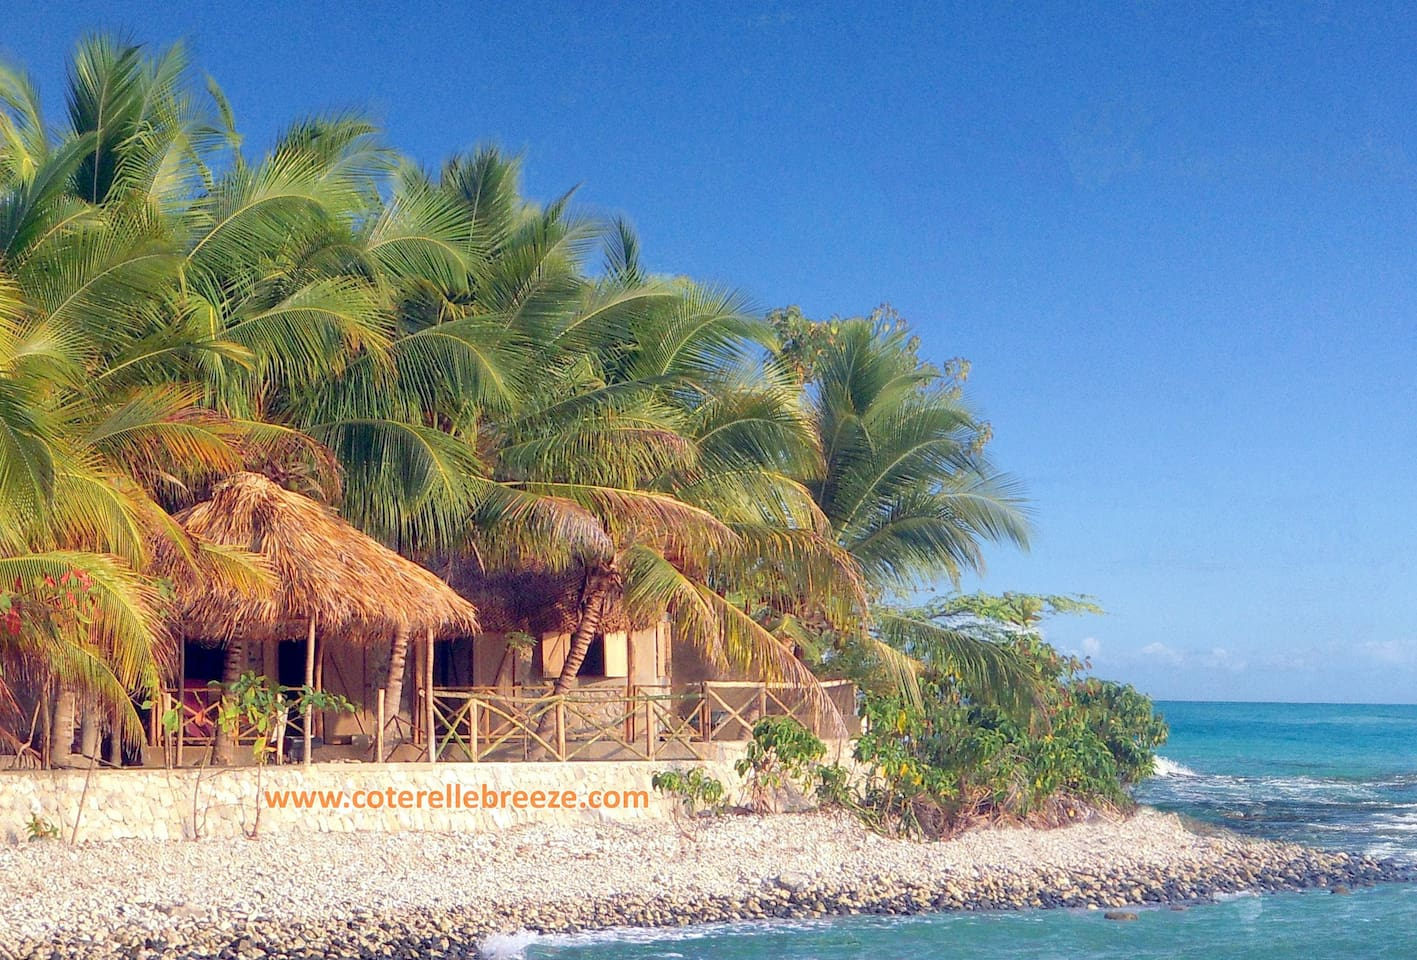 Great Reef & Snorkeling fun right at Coterelle Breeze.